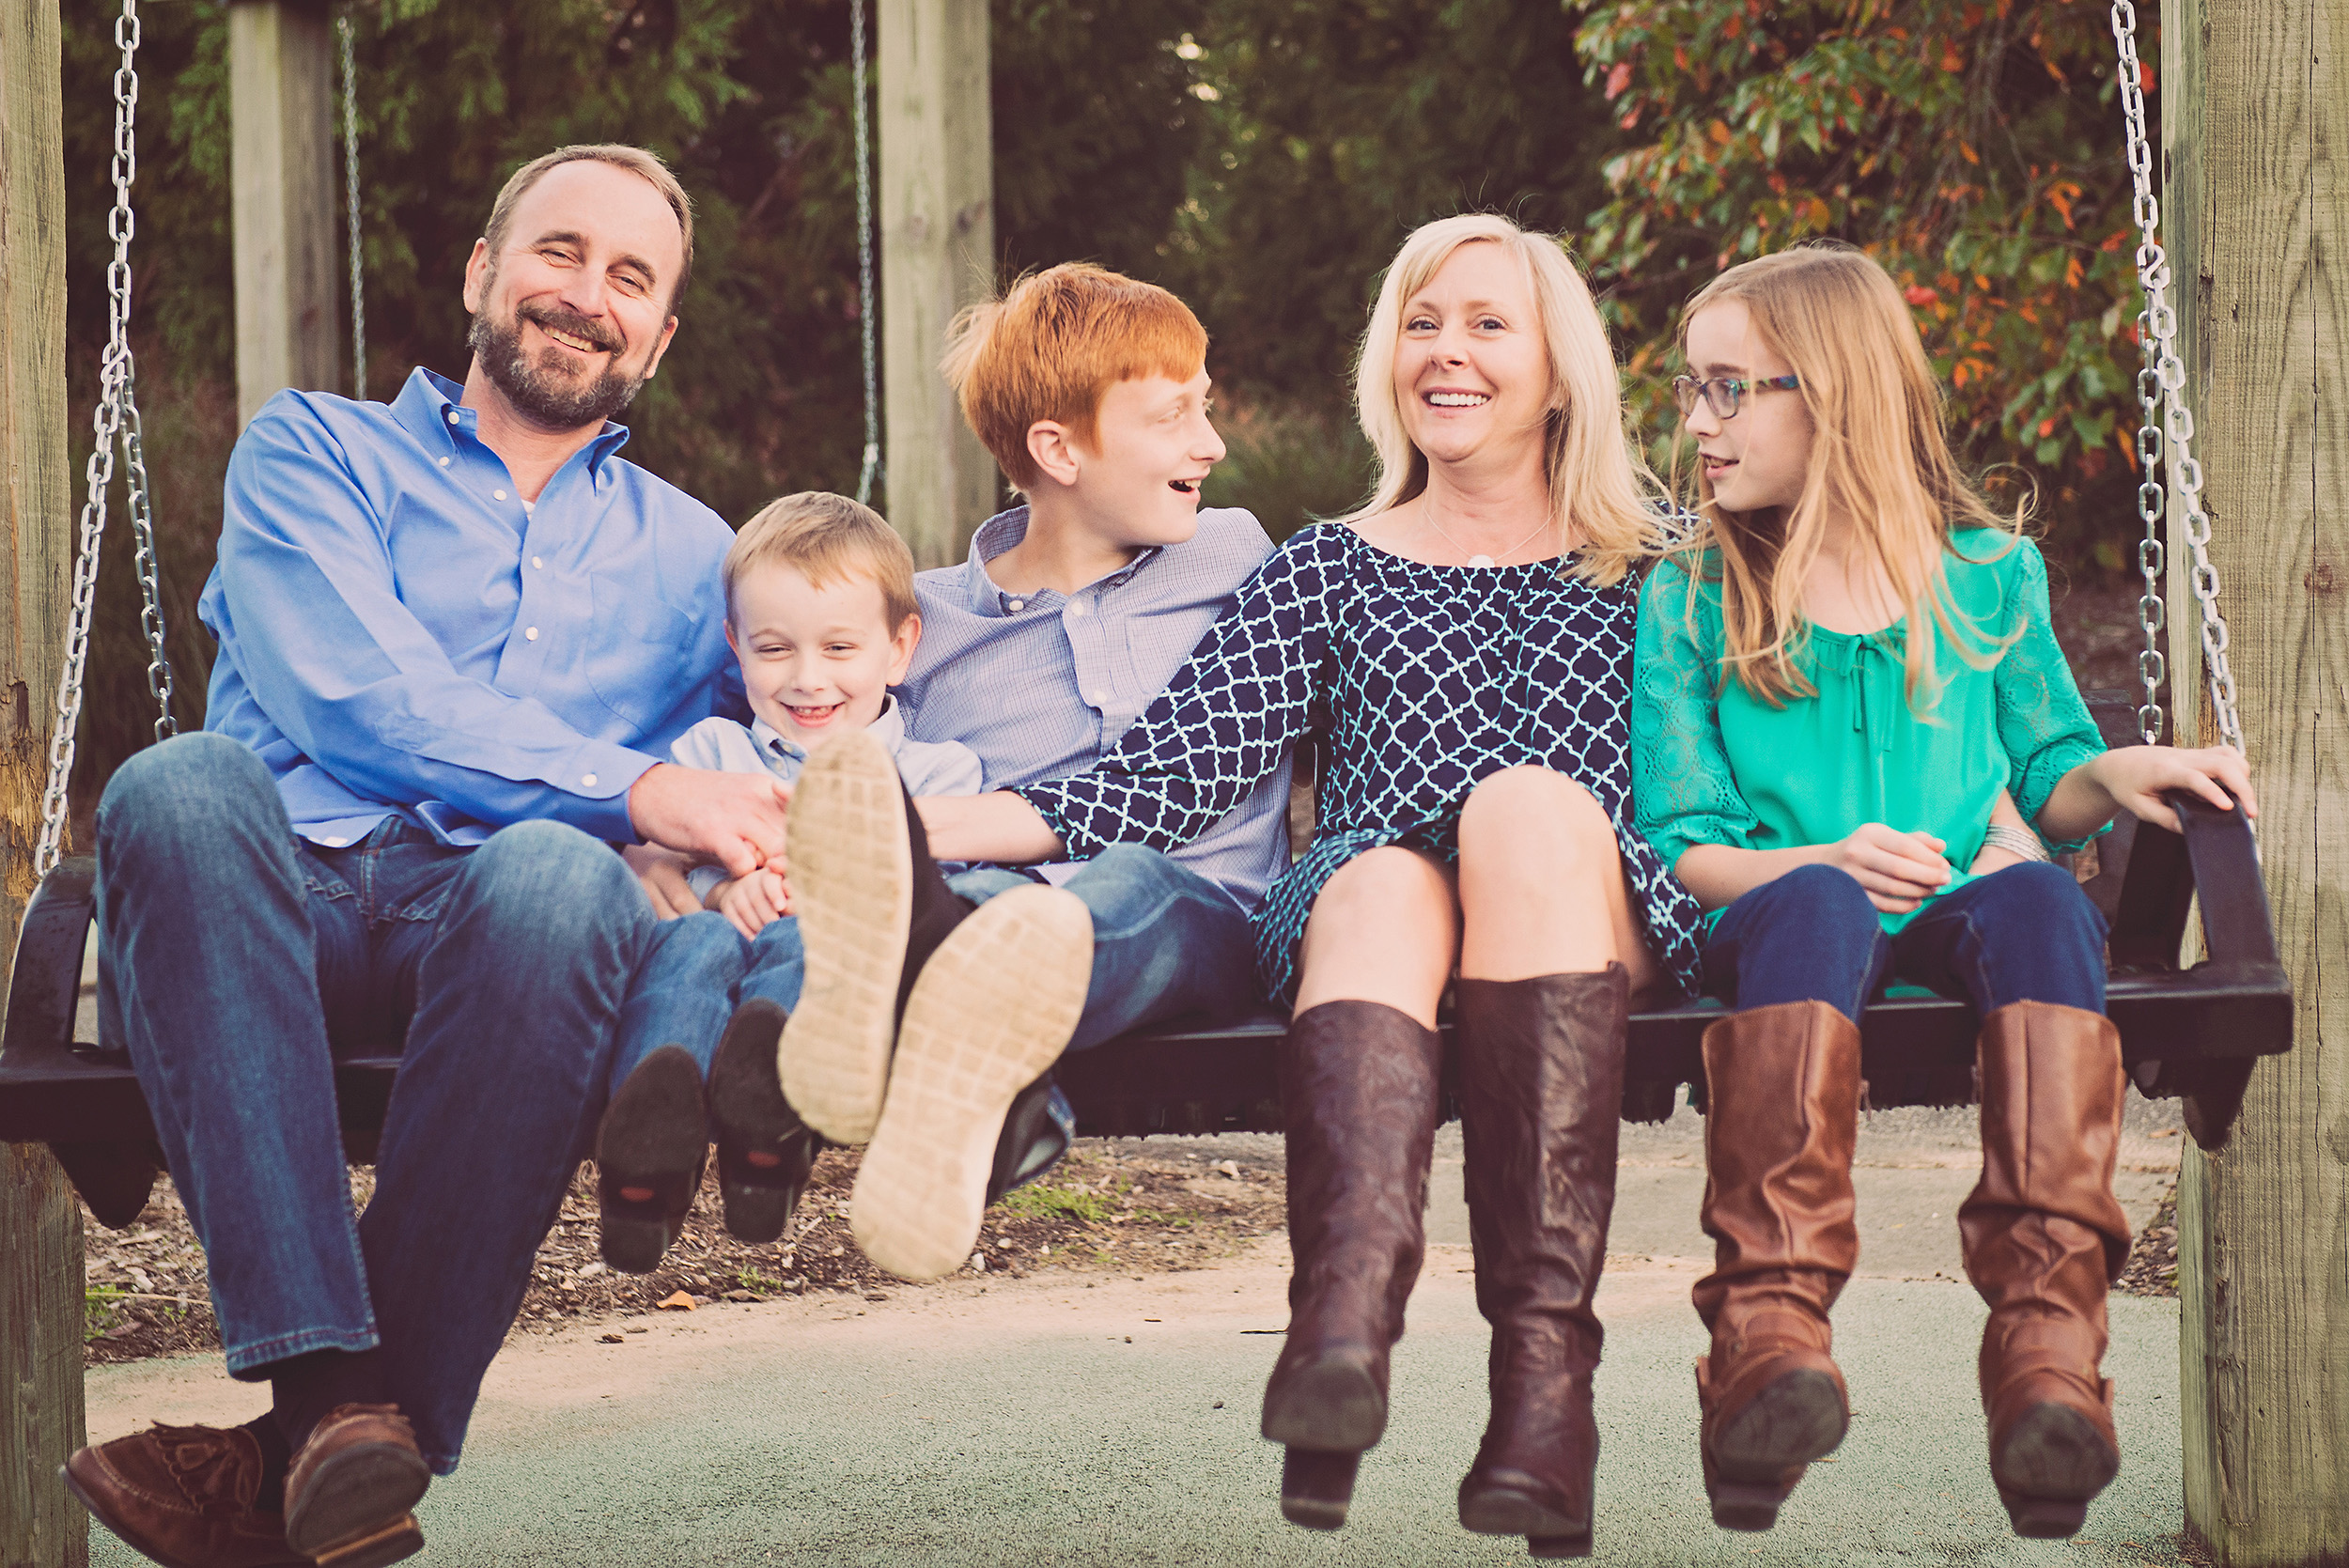 fall-family-photography-sessions-cary-15.jpg